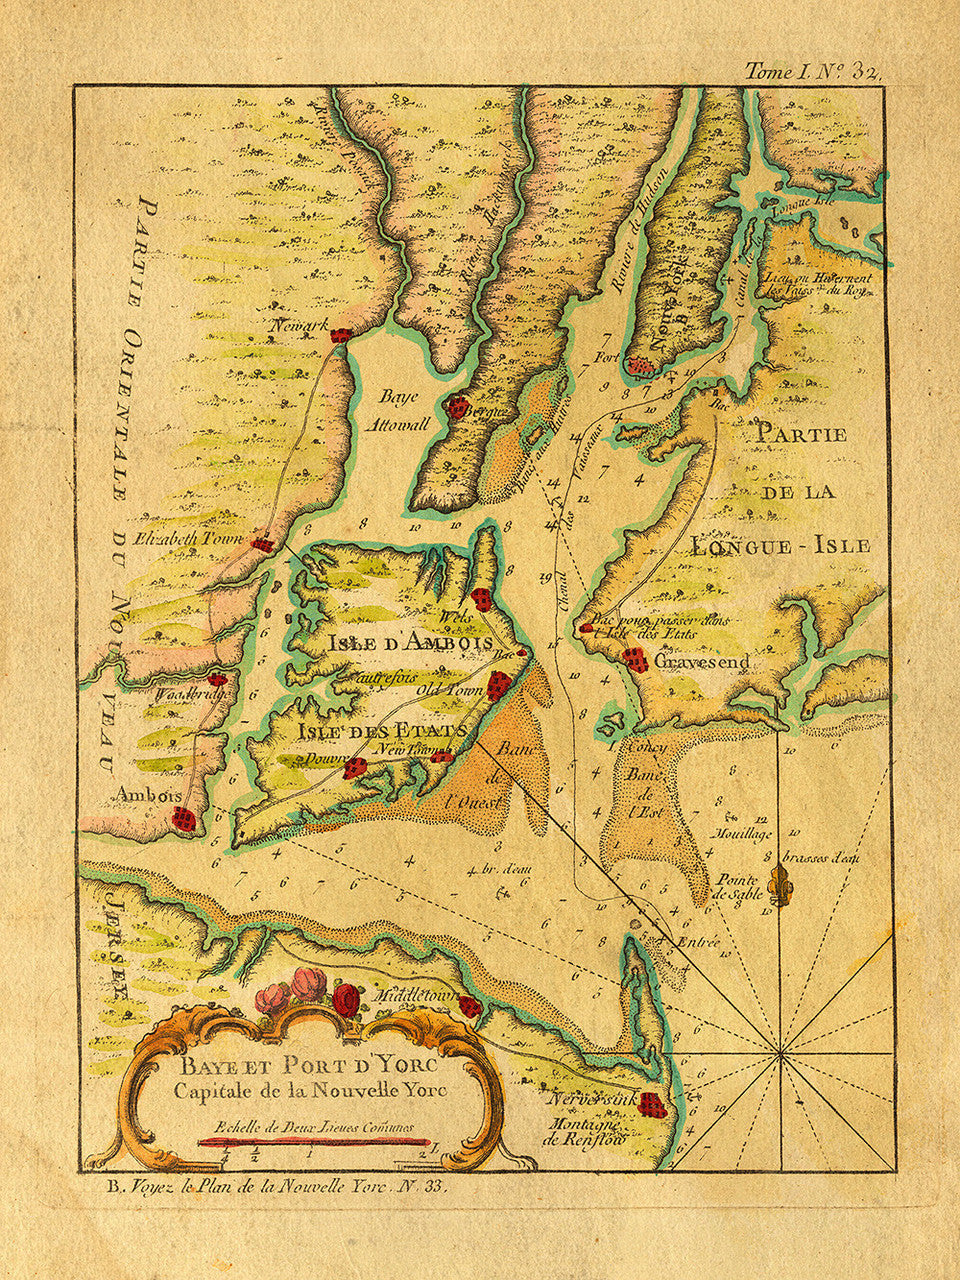 New York, 1764, French & Indian War Era, Bellin Map on liberty island map, colonial new york state map, clayton new york map, statue of liberty map, new york water taxi map, long island school district map, bell harbor florida map, port chester new york map, mississippi river map, east new york map, east coast map, hempstead new york map, new york university map, hudson valley new york map, york harbor me map, erie canal map, new york lighthouses map, rivers in new york map, new york bay map, new york finger lakes map,